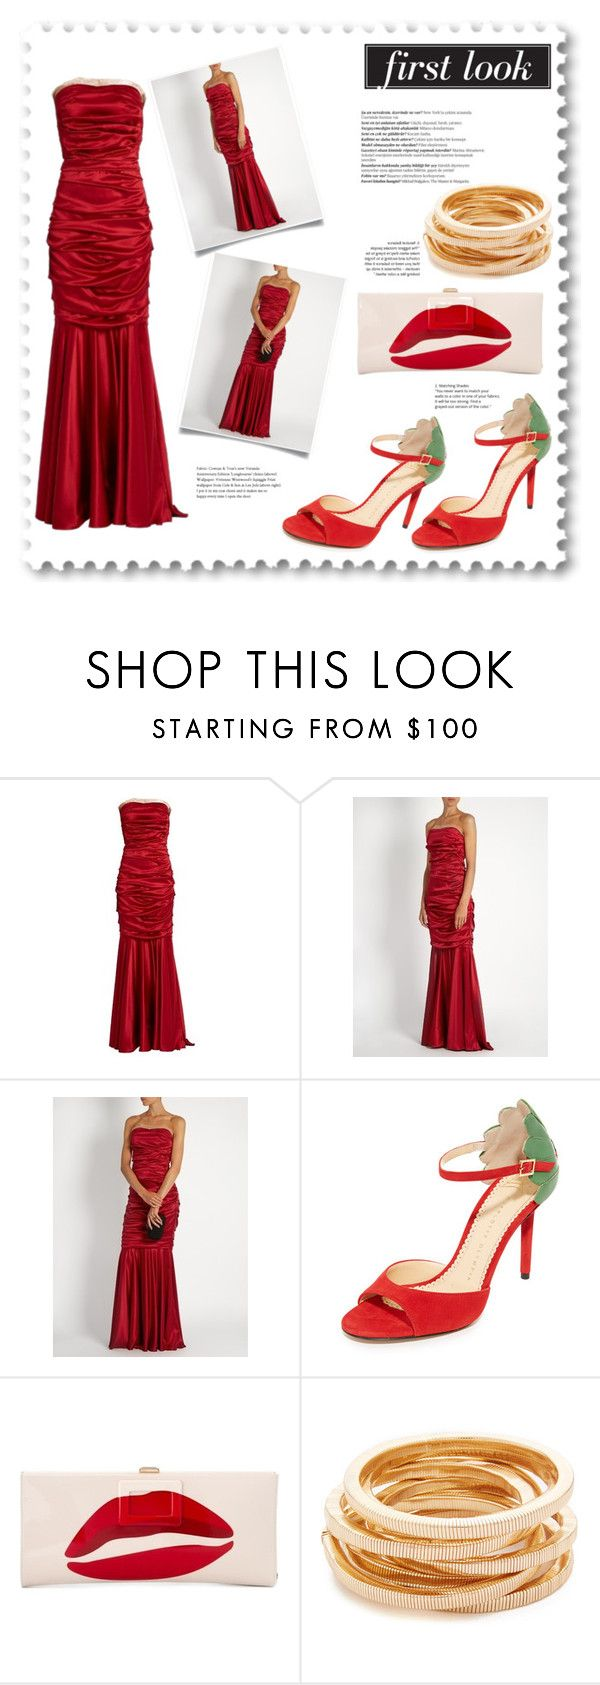 """""""Strapless Silk-Blend Satin Evening Gown"""" by bonnielindsay ❤ liked on Polyvore featuring Dolce&Gabbana, Charlotte Olympia, Roger Vivier, Balmain, Kenneth Jay Lane, red, dolceandgabbana, gown, evening and strapless"""